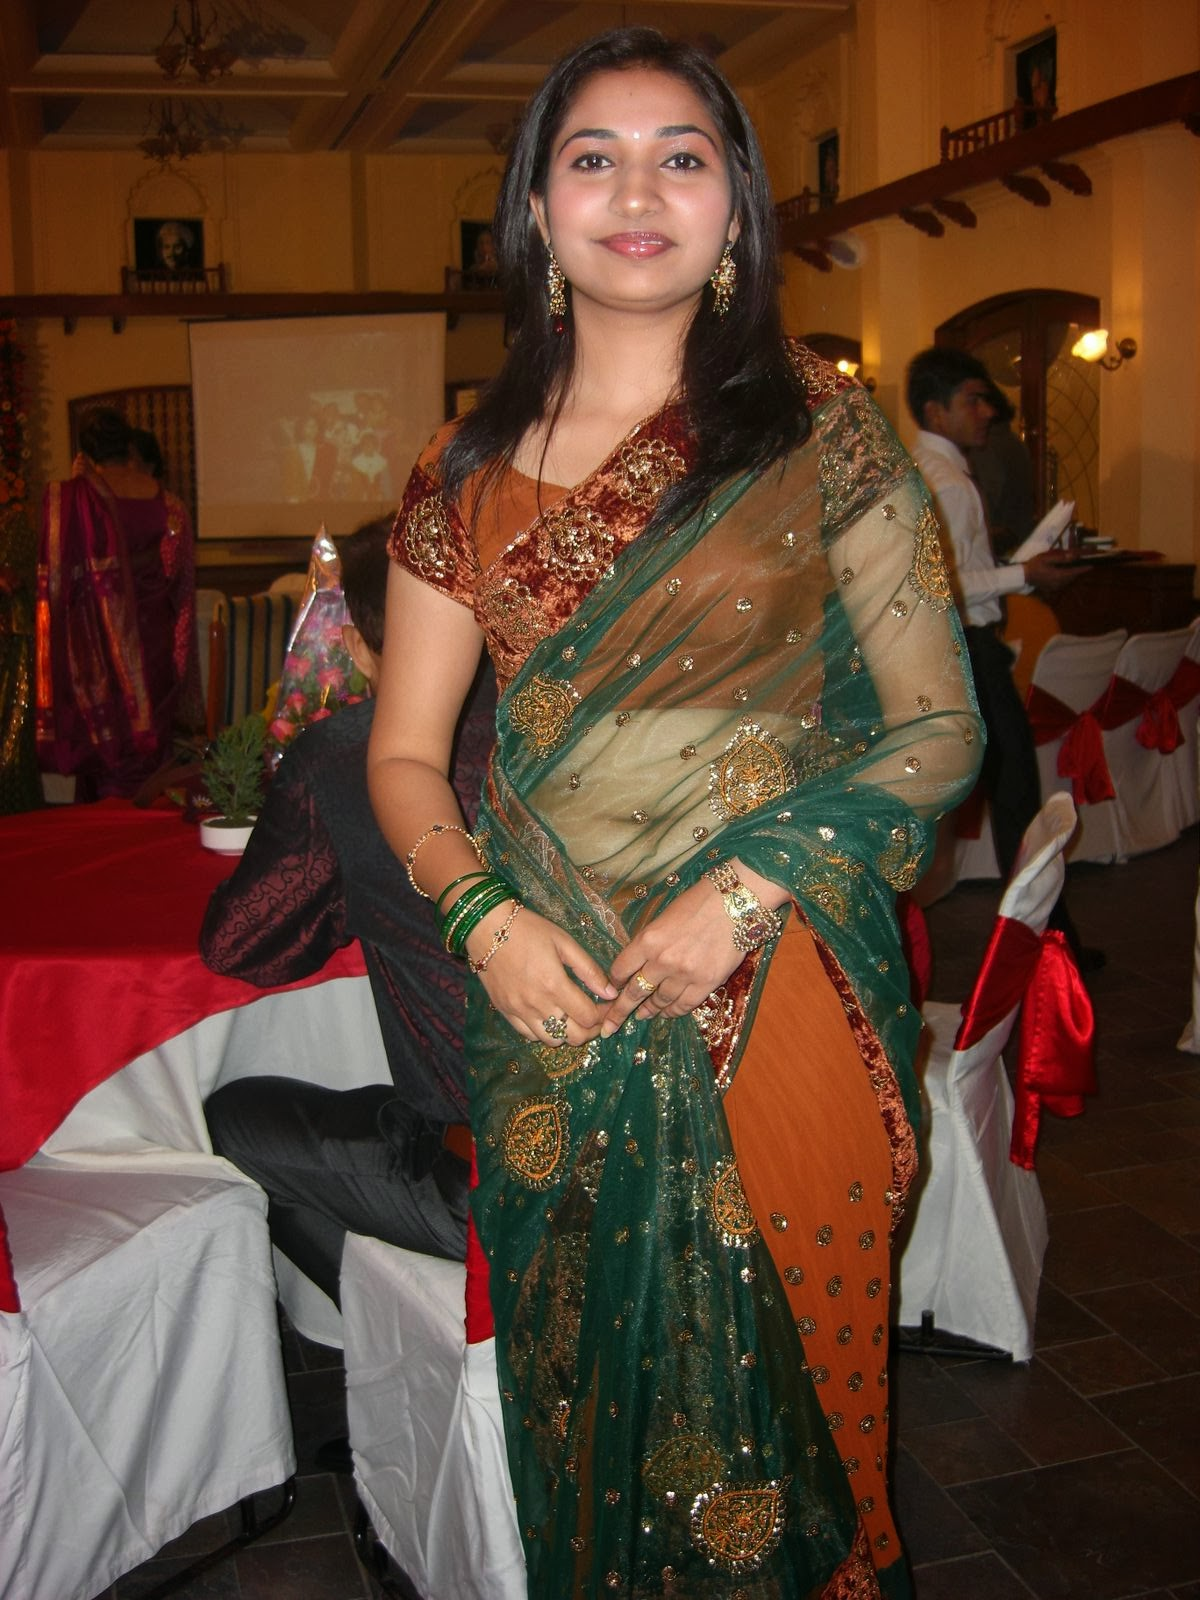 22 Latest Photos Of Indian Housewives In Saree  Craziest Photo Collection-6219